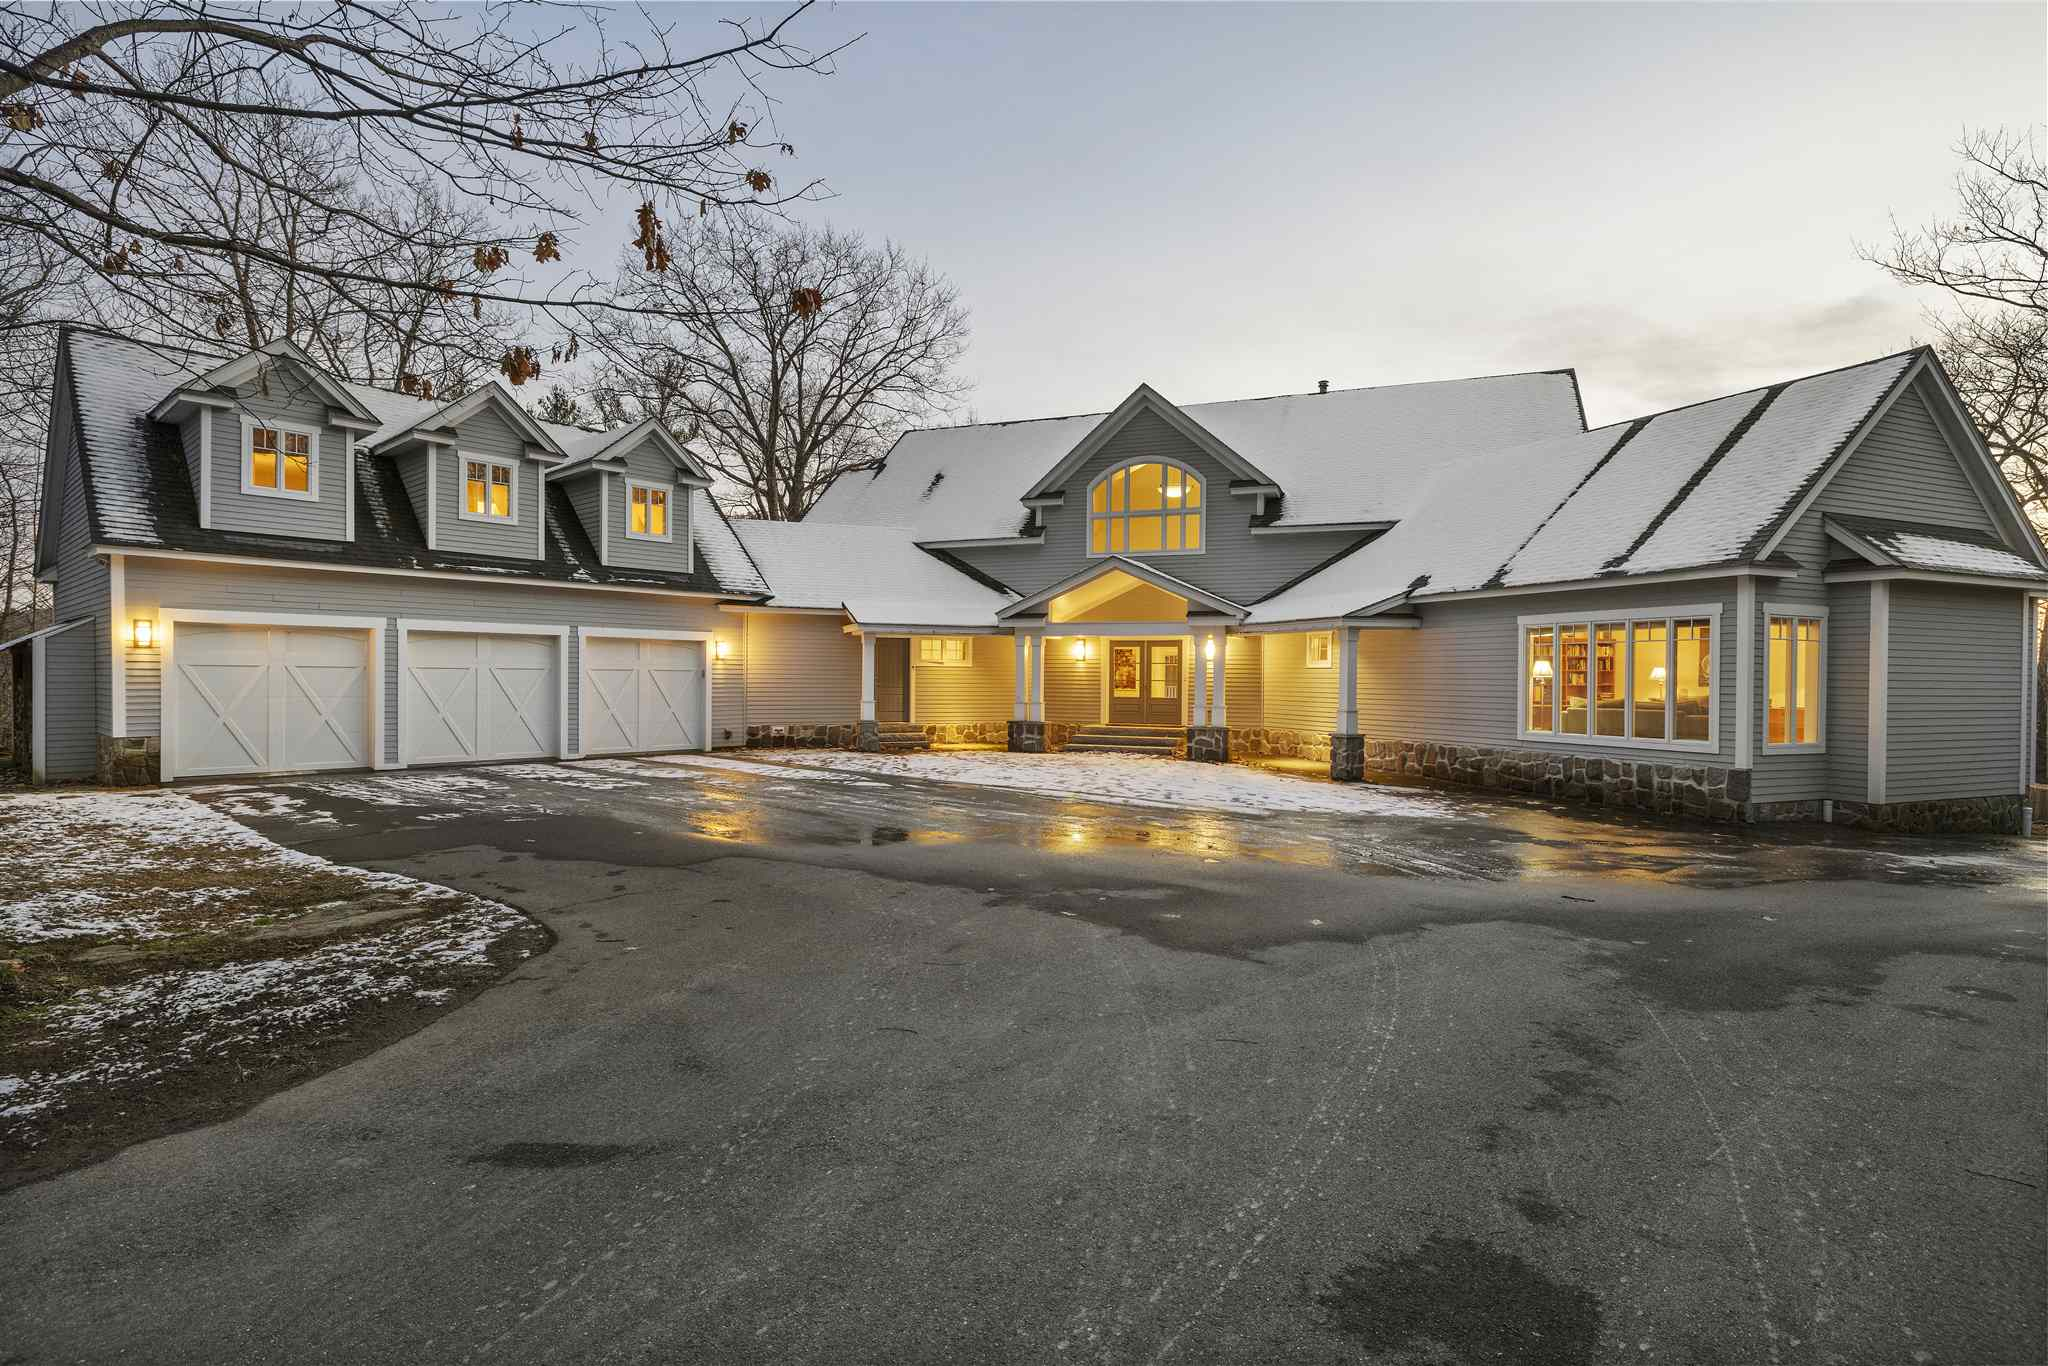 image of Plainfield NH Home | sq.ft. 7191